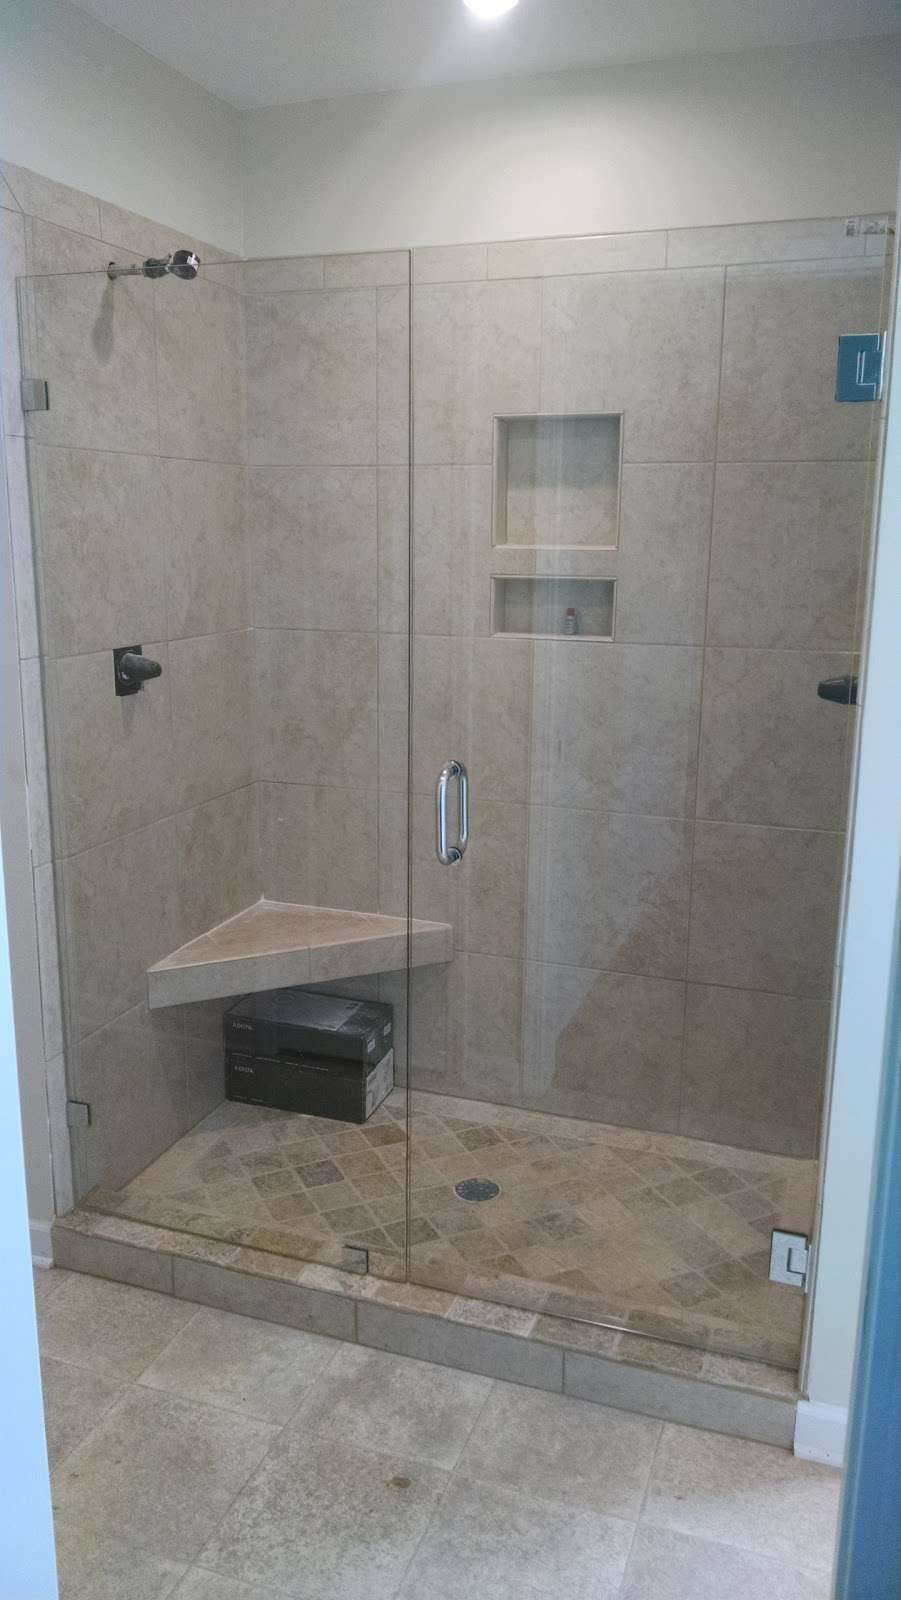 Iredell Glass & Mirror Inc -   | Photo 2 of 10 | Address: 1308 Barkley Rd N, Statesville, NC 28677, USA | Phone: (704) 872-8821